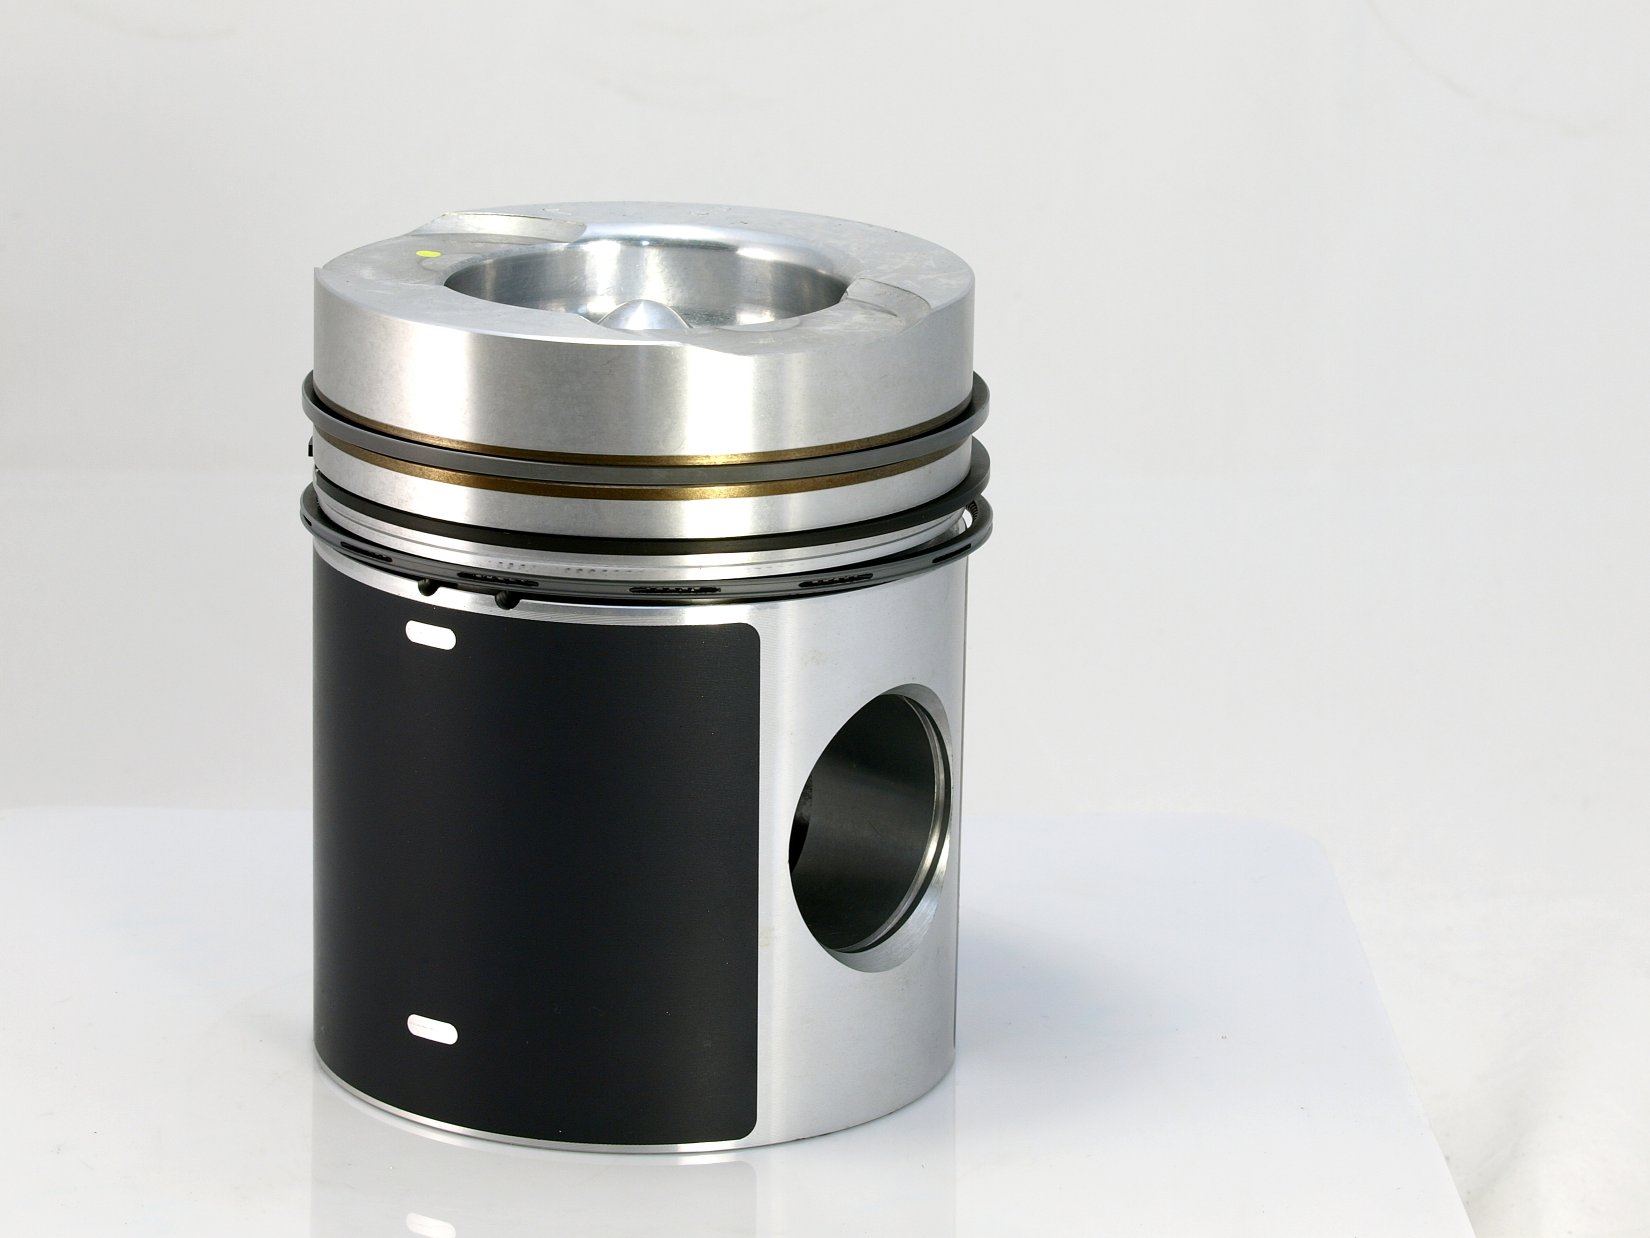 Bus Pistons for Diesel Engine Parts made by ZENITH TROOP IND. CO., LTD. 善統工業股份有限公司 - MatchSupplier.com